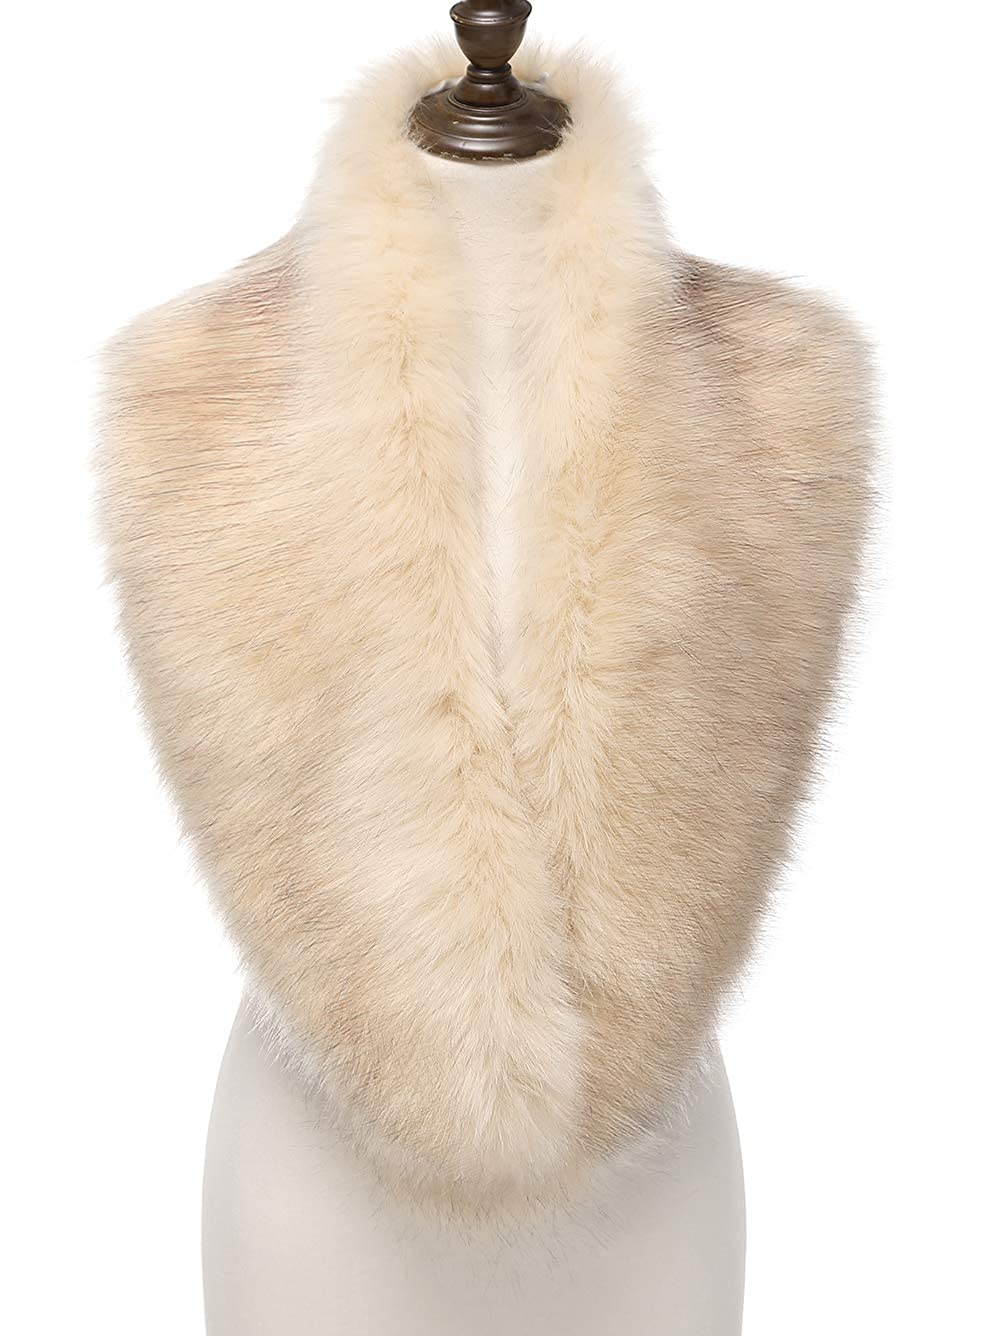 1920s Fashion & Clothing | Roaring 20s Attire Changuan Extra Large Womens Faux Fur Collar Shawl Scarf Wrap Evening Wedding Cape for Winter Coat  AT vintagedancer.com